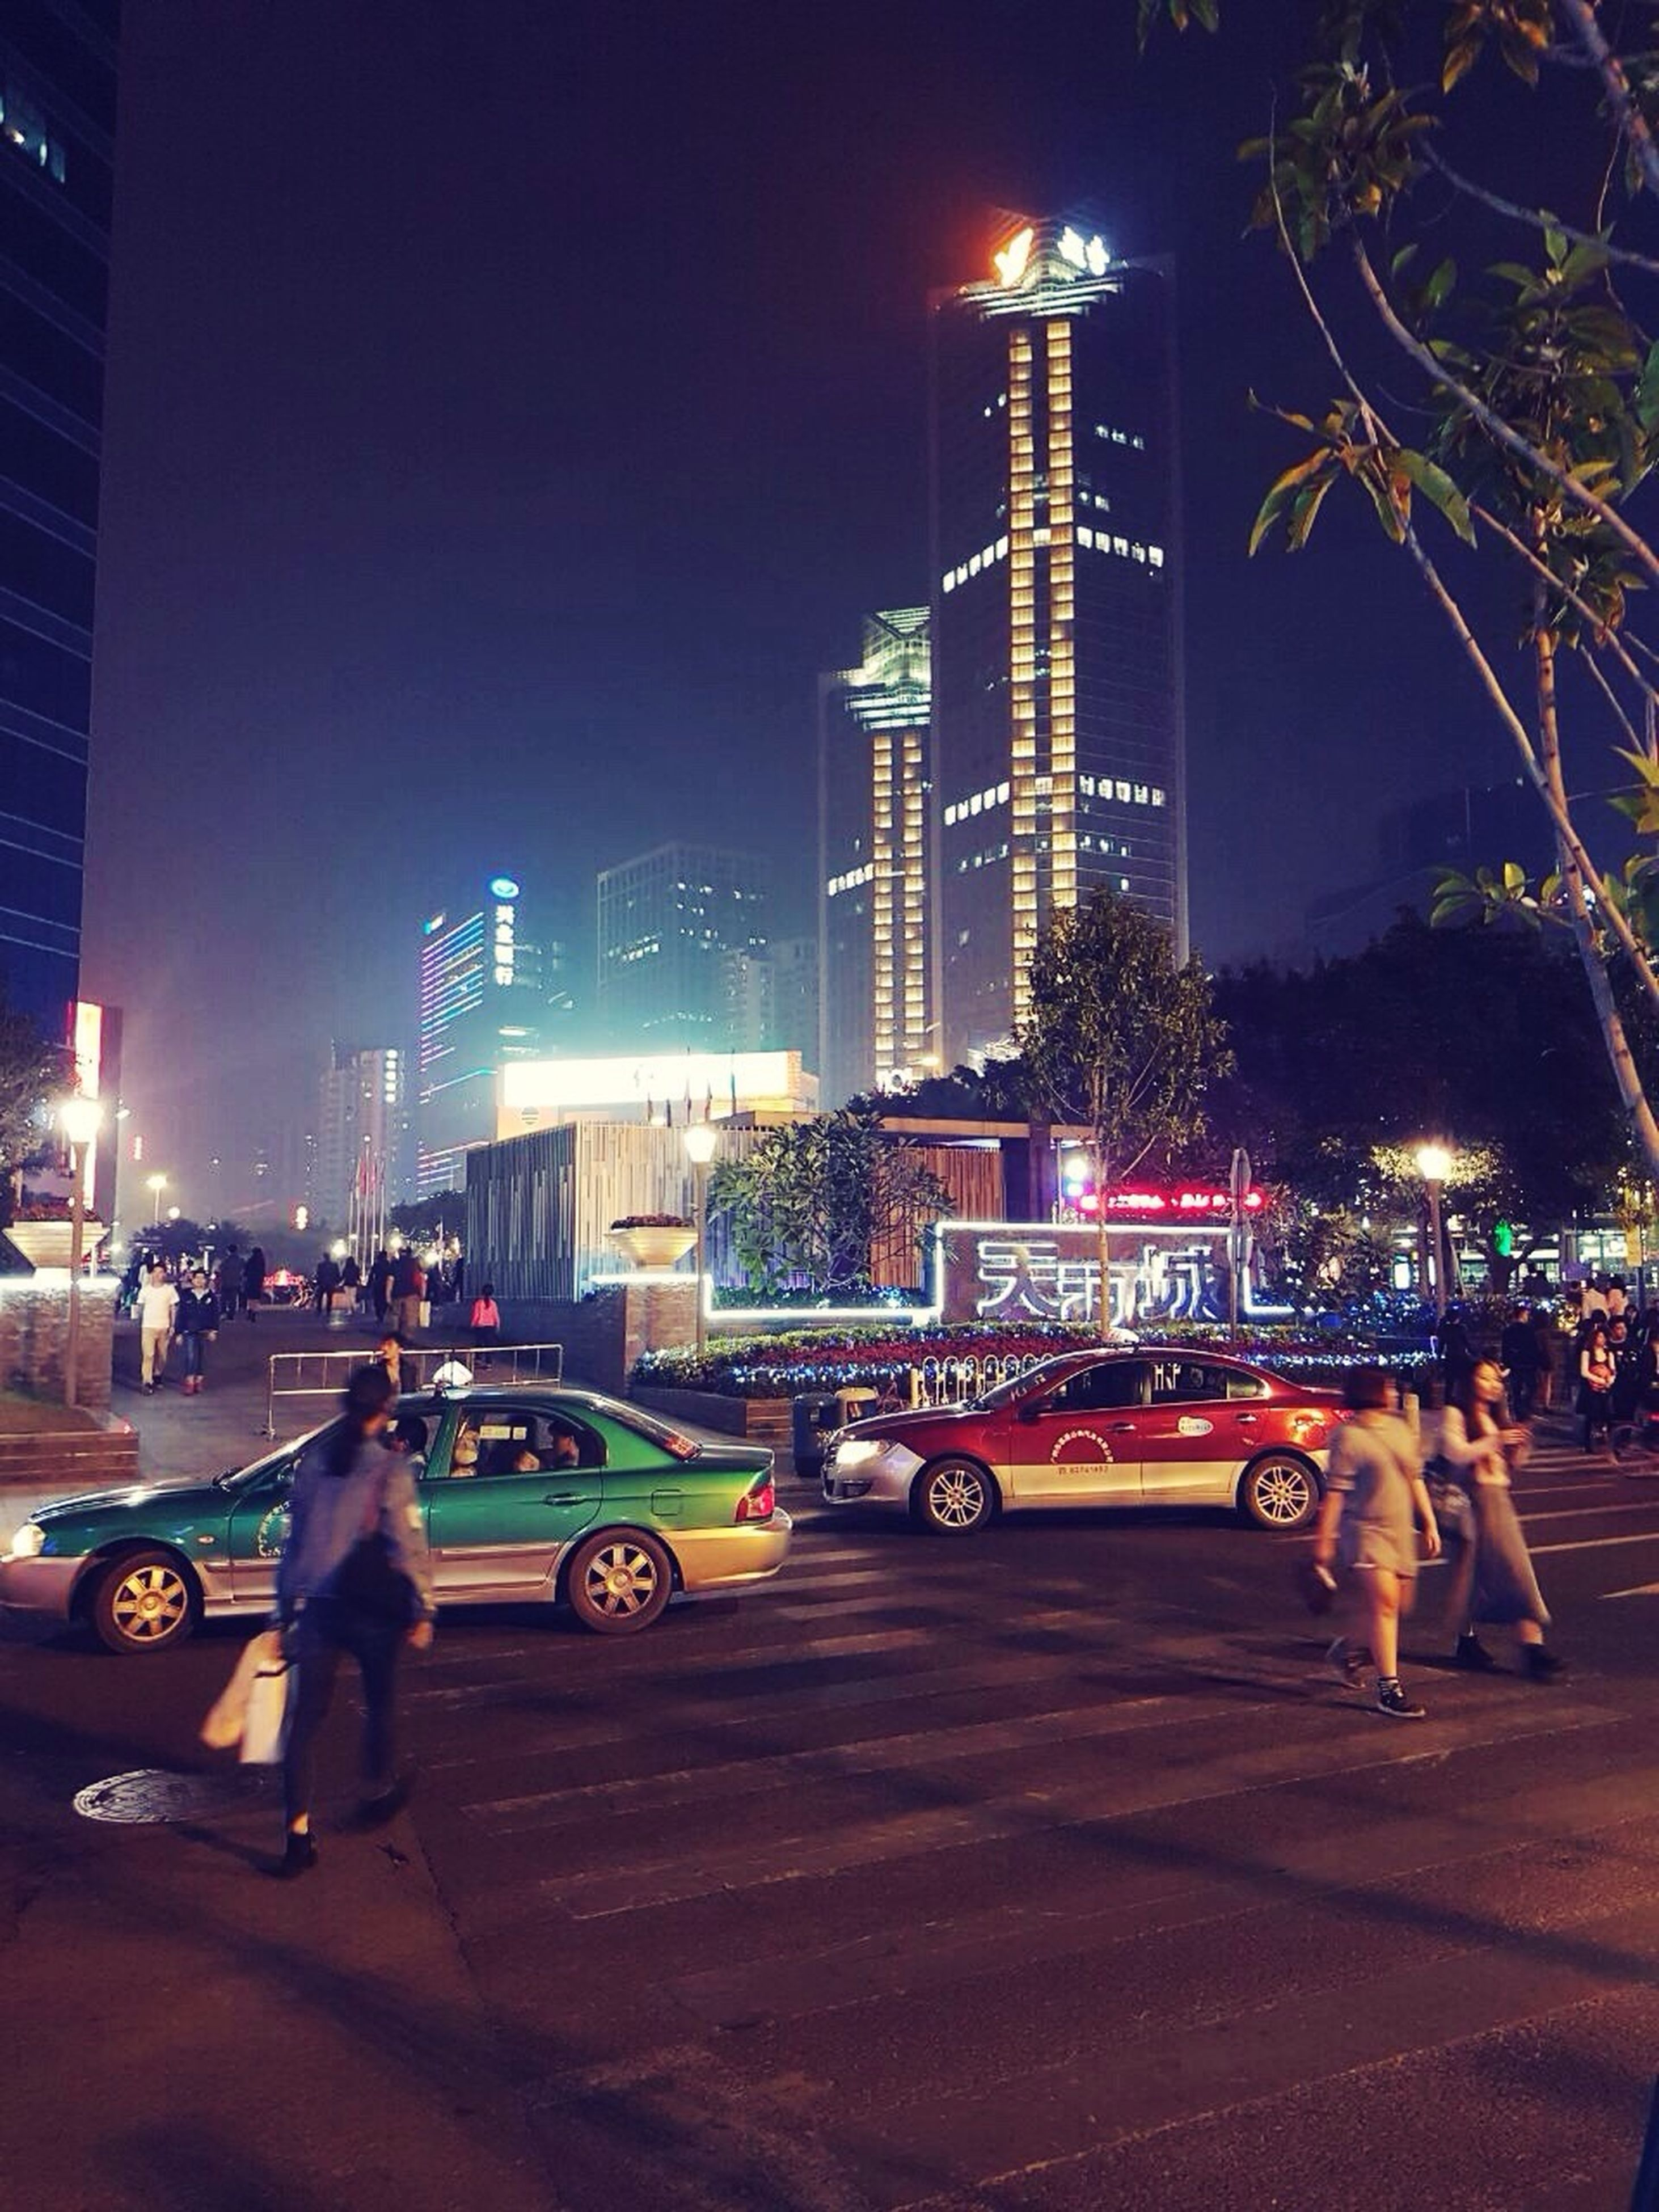 night, illuminated, city, building exterior, travel destinations, architecture, sky, built structure, outdoors, land vehicle, skyscraper, people